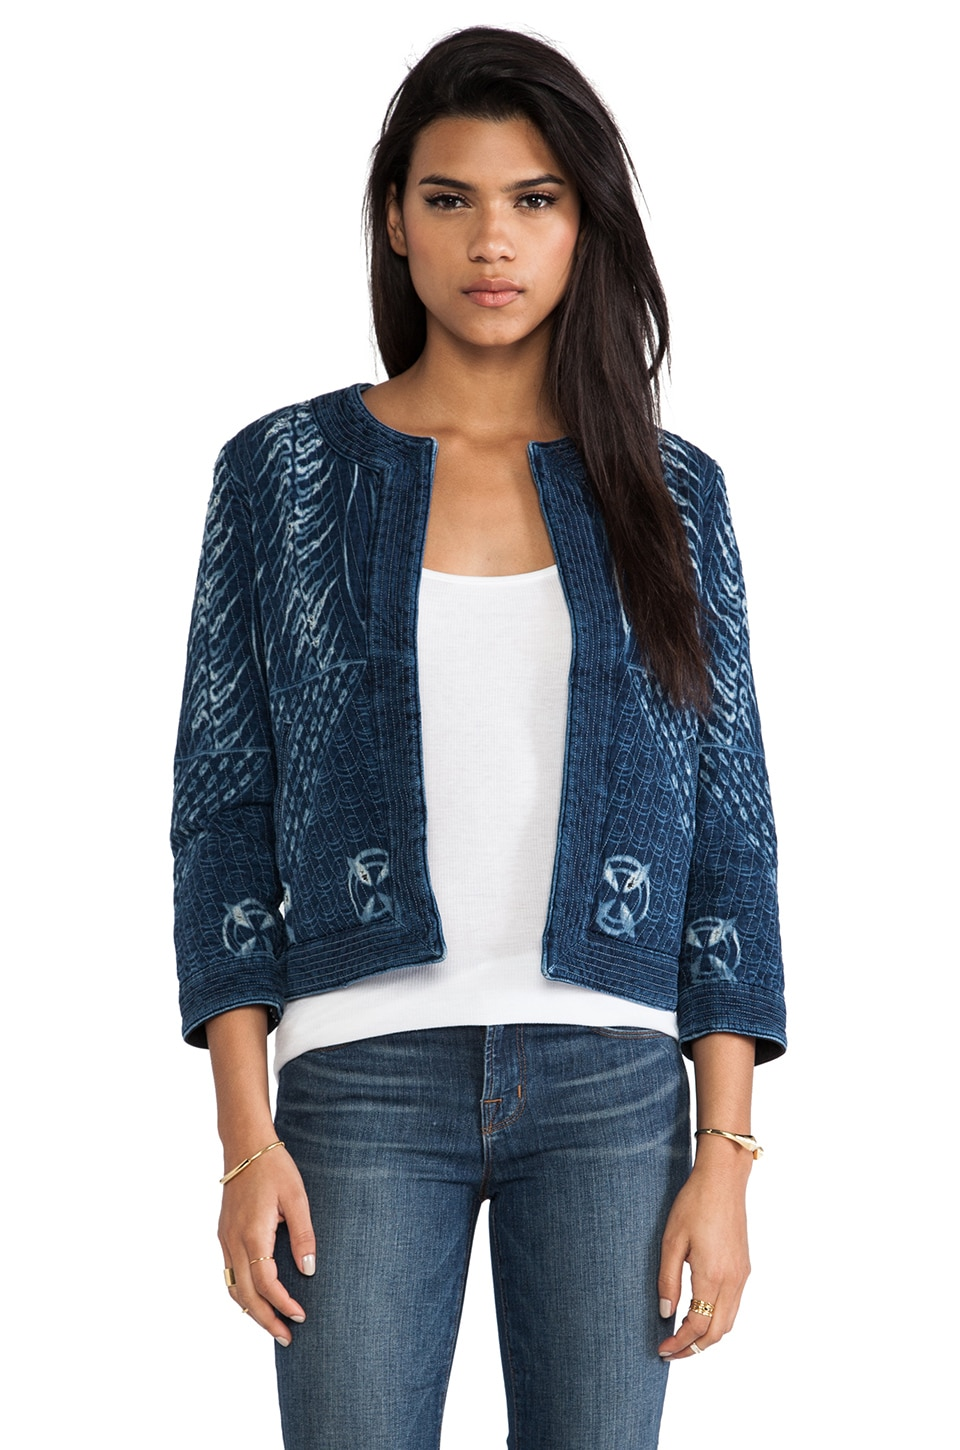 Citizens of Humanity Thalia Jacket in Boho